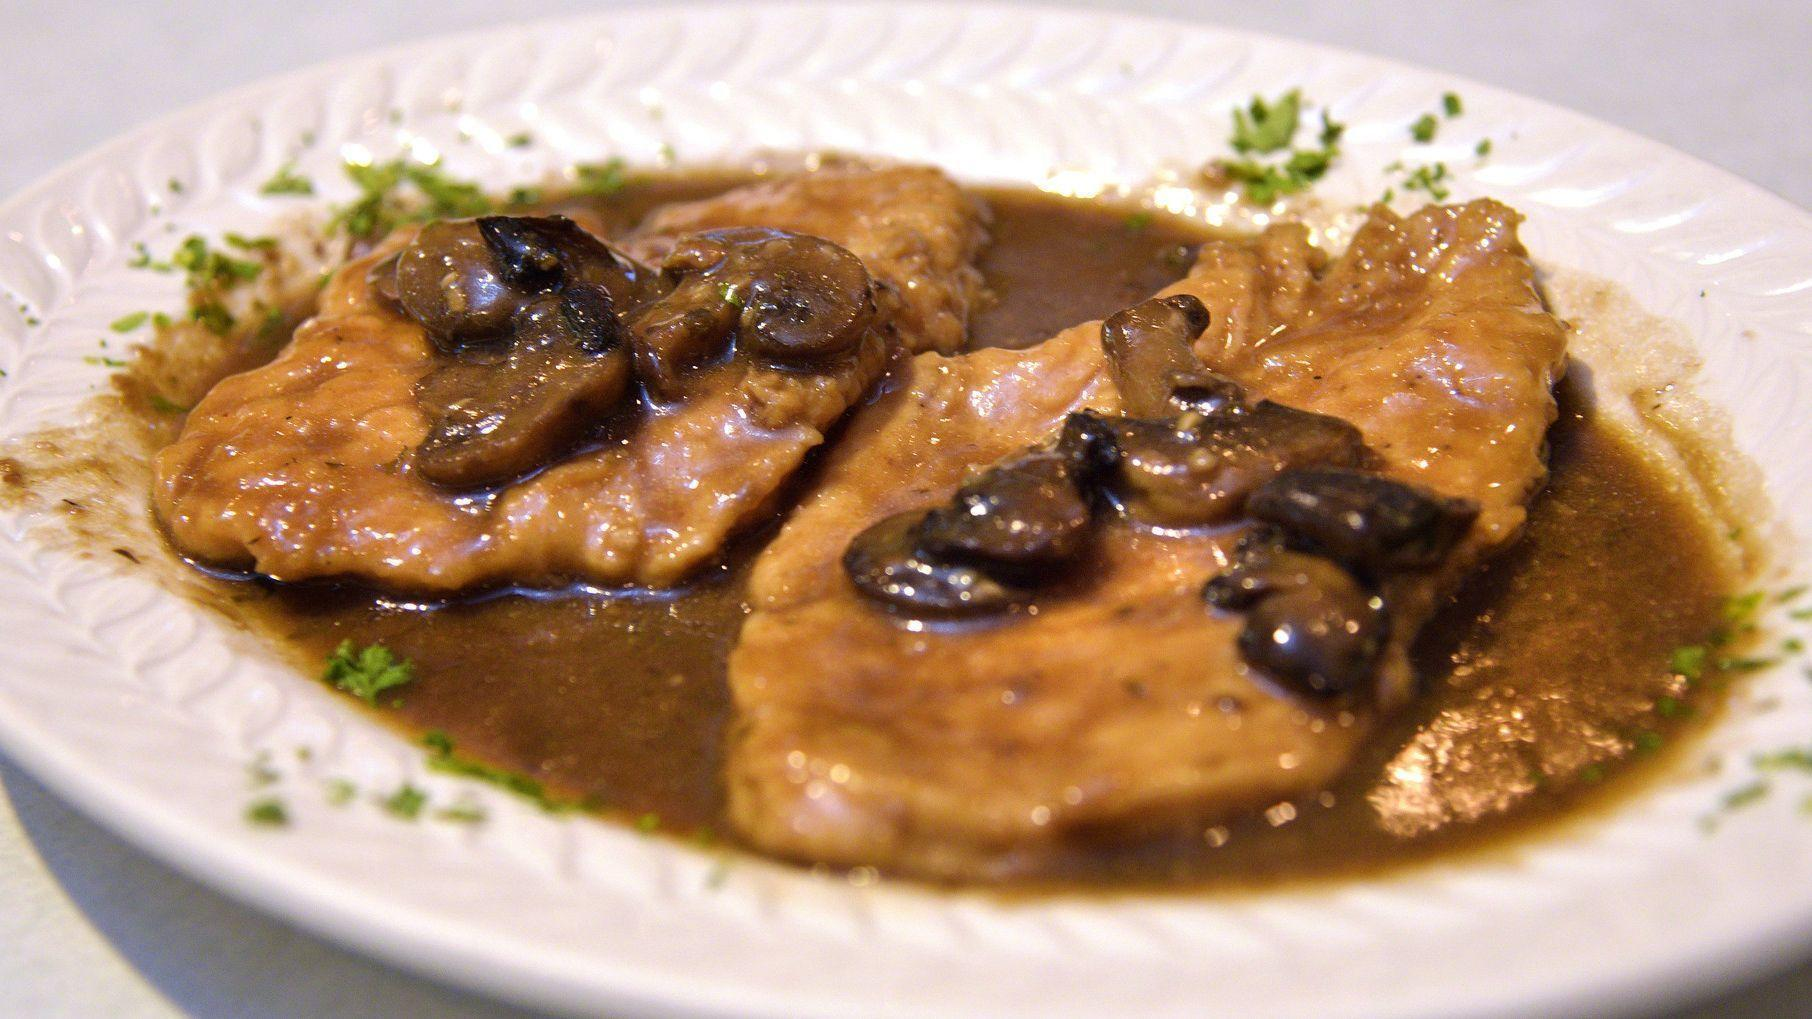 Carrie's Kitchen: Three more rich recipes for the slow cooker